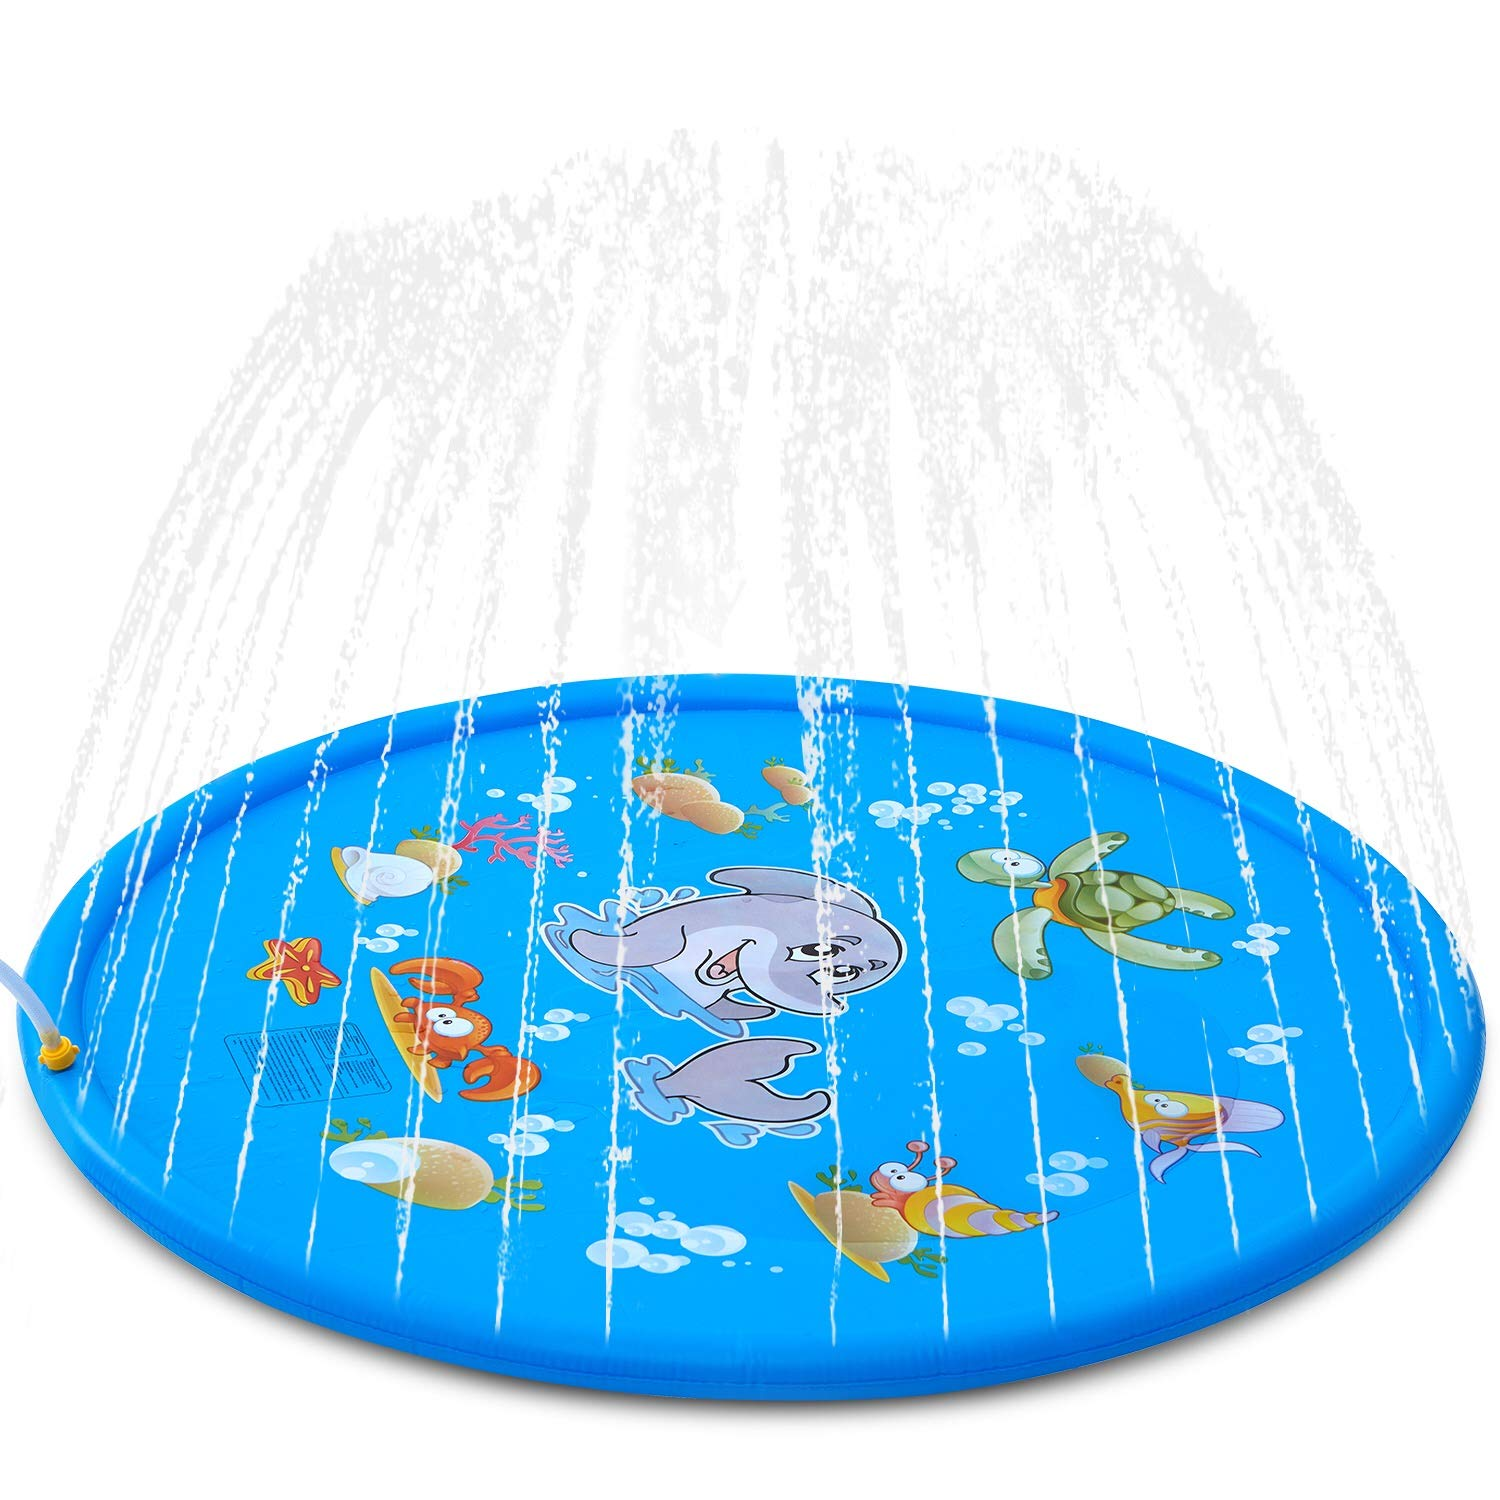 ALWOA Splash Pad, 68''Kids Sprinkler Pad for 1 2 3 4 5 Year Old Toodler Children Boys Girls, Inflatable Shark Water Toys Fun for Outdoor, Upgraded Sprinkle & Splash Play Mat with Wading Pool by ALWOA